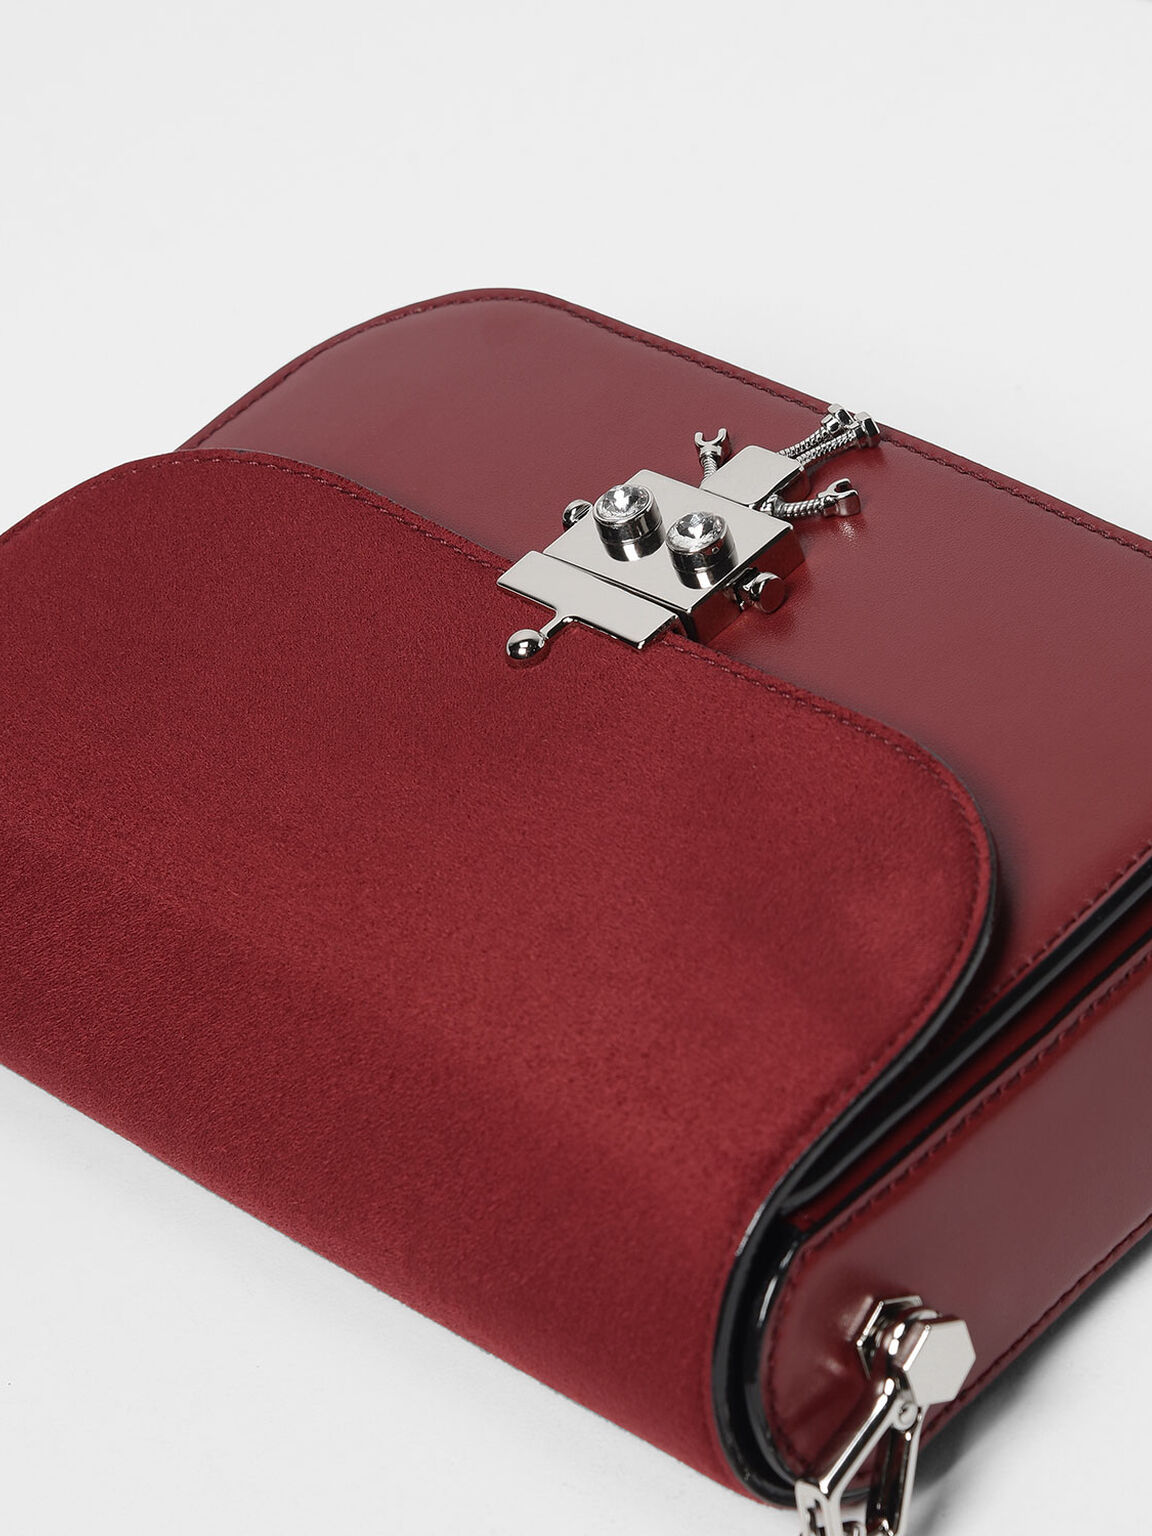 Robot Detail Push-Lock Bag, Maroon, hi-res